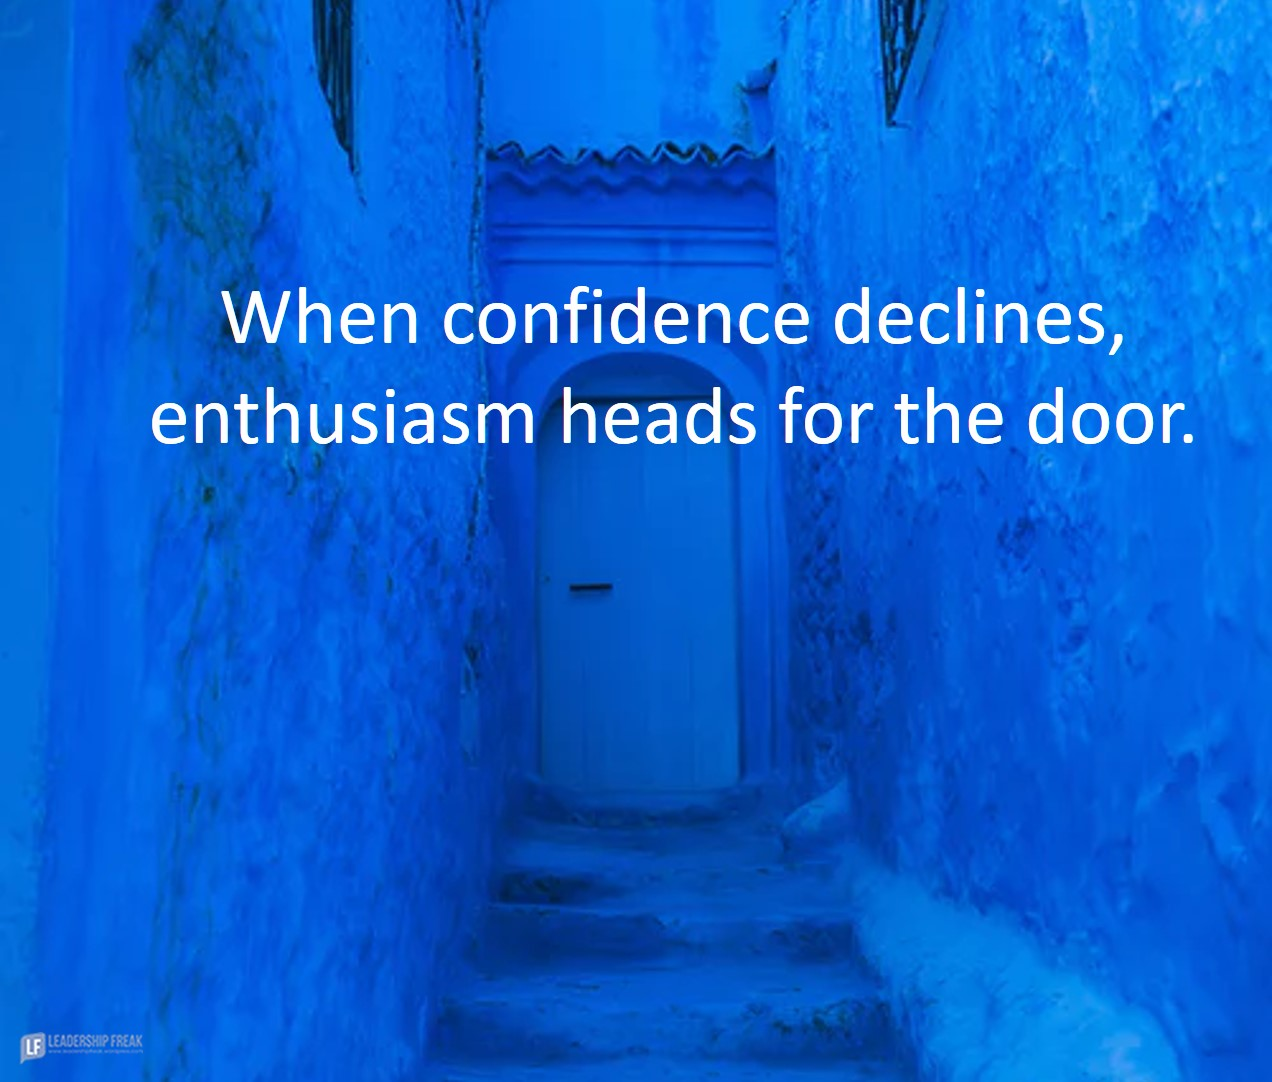 How to Build Enthusiasm in a Half-Hearted World